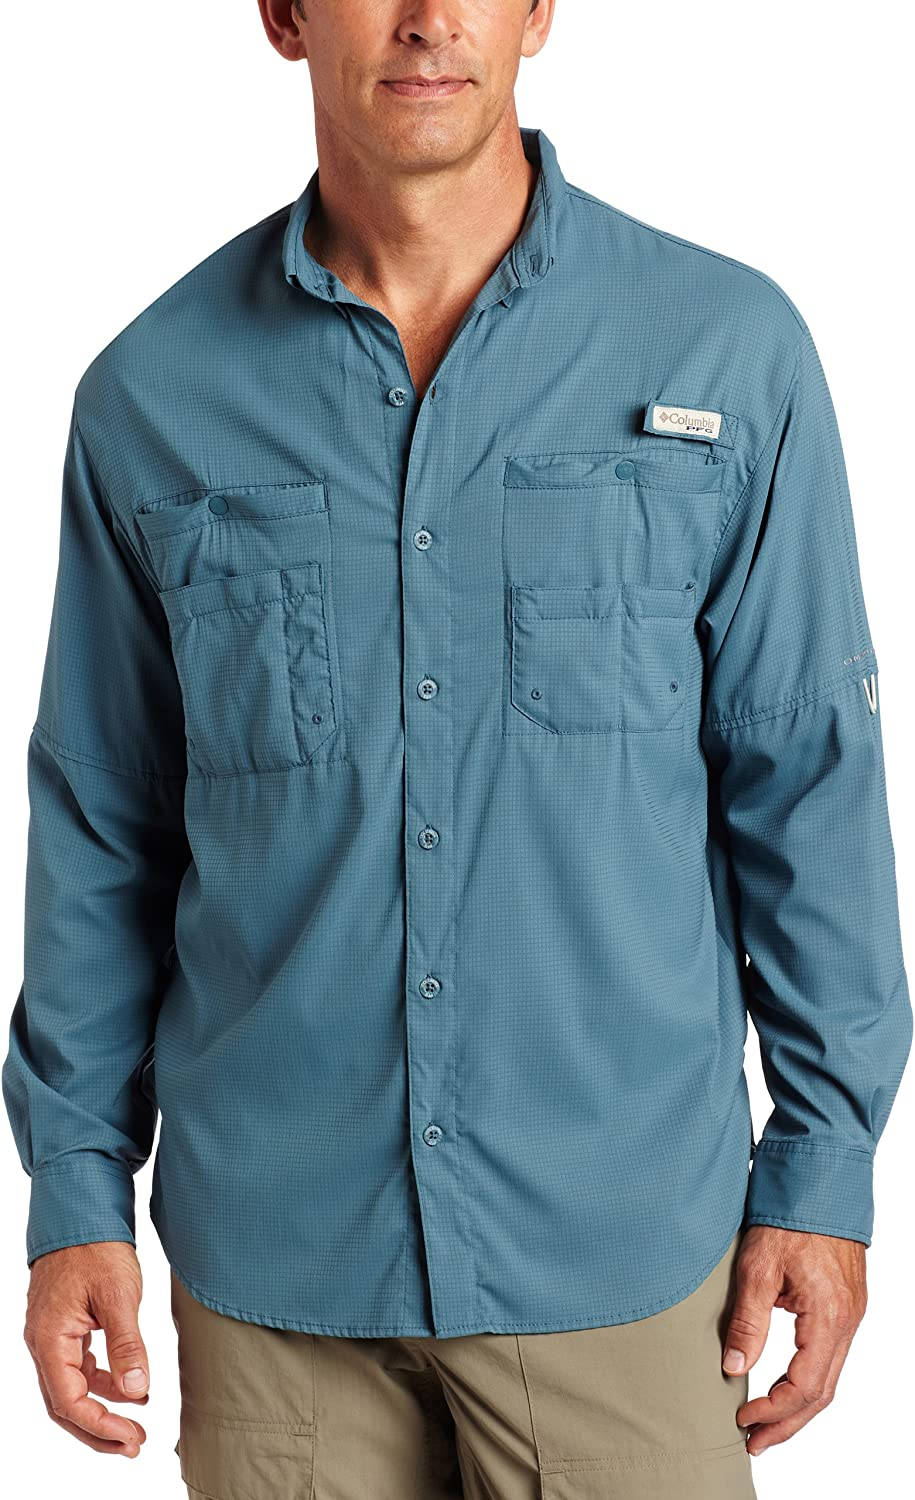 Popular product Columbia Men's Plus Tamiami II Long Sleeve X- Tidewater Shirt - High quality new